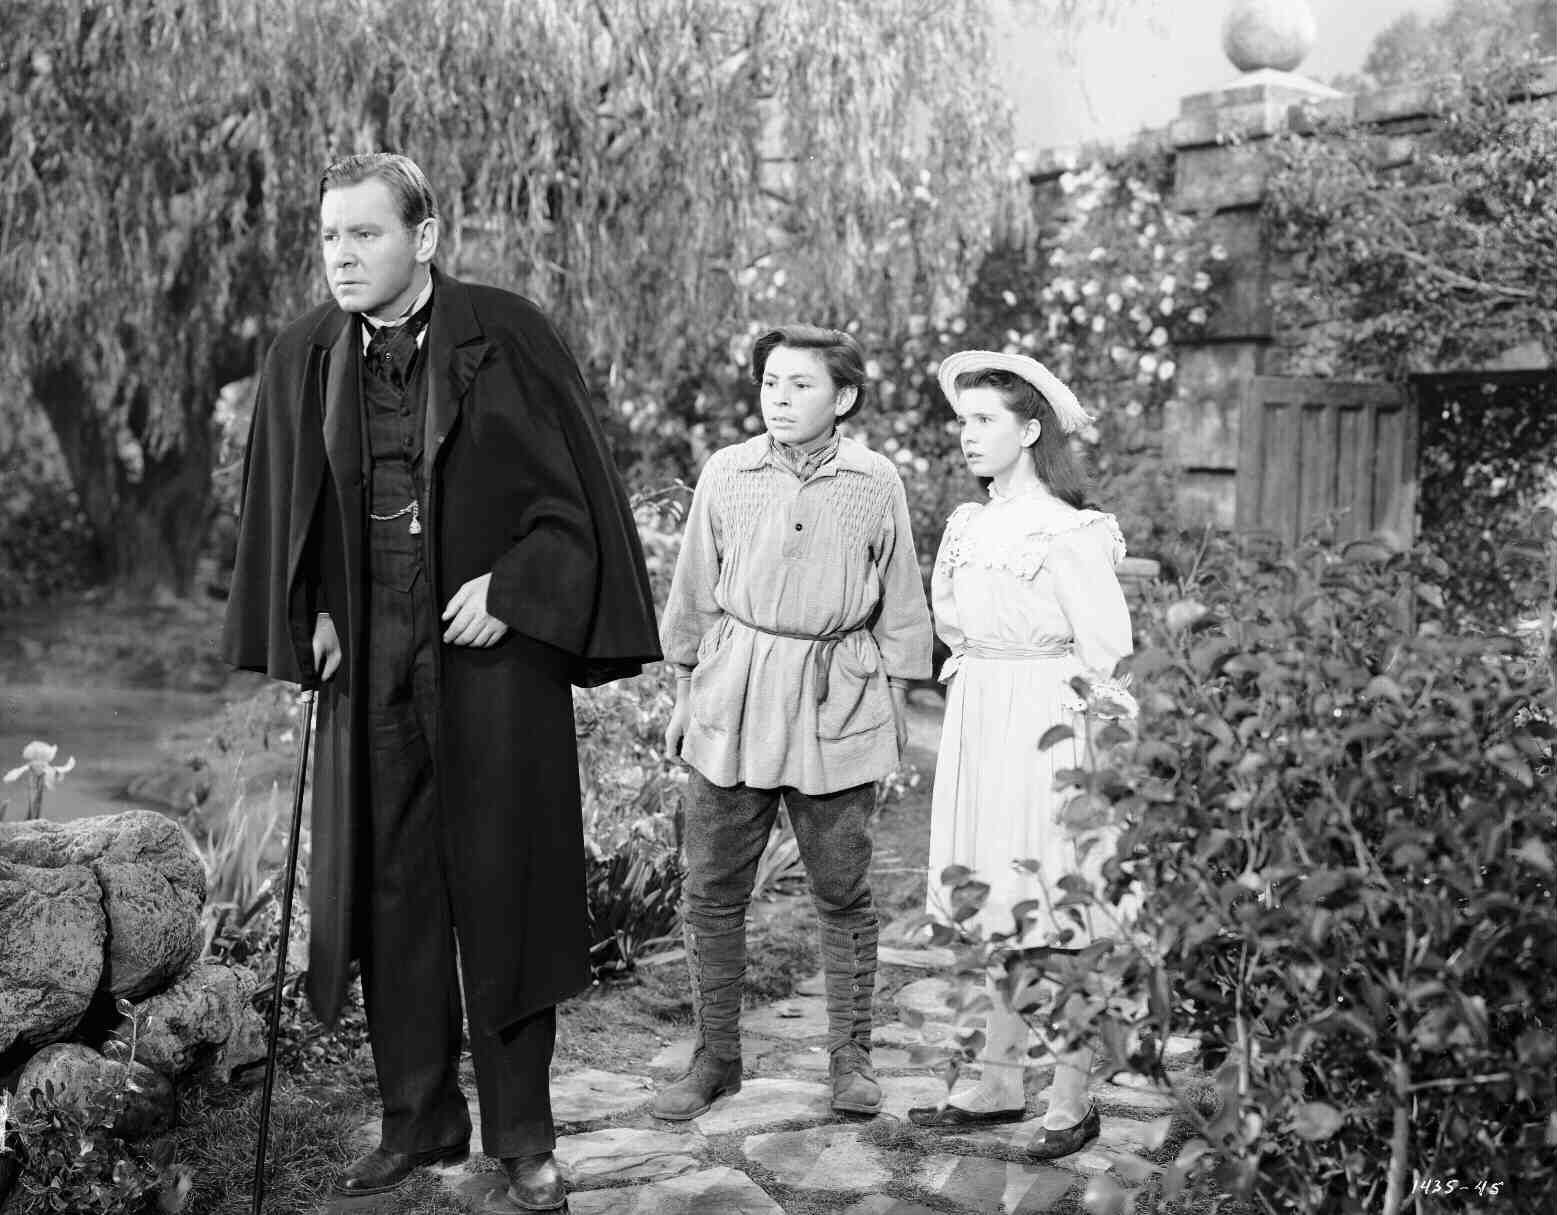 Secret Garden Kitchen Nightmares The Secret Garden 1949 Full Shot Of Herbert Marshall As